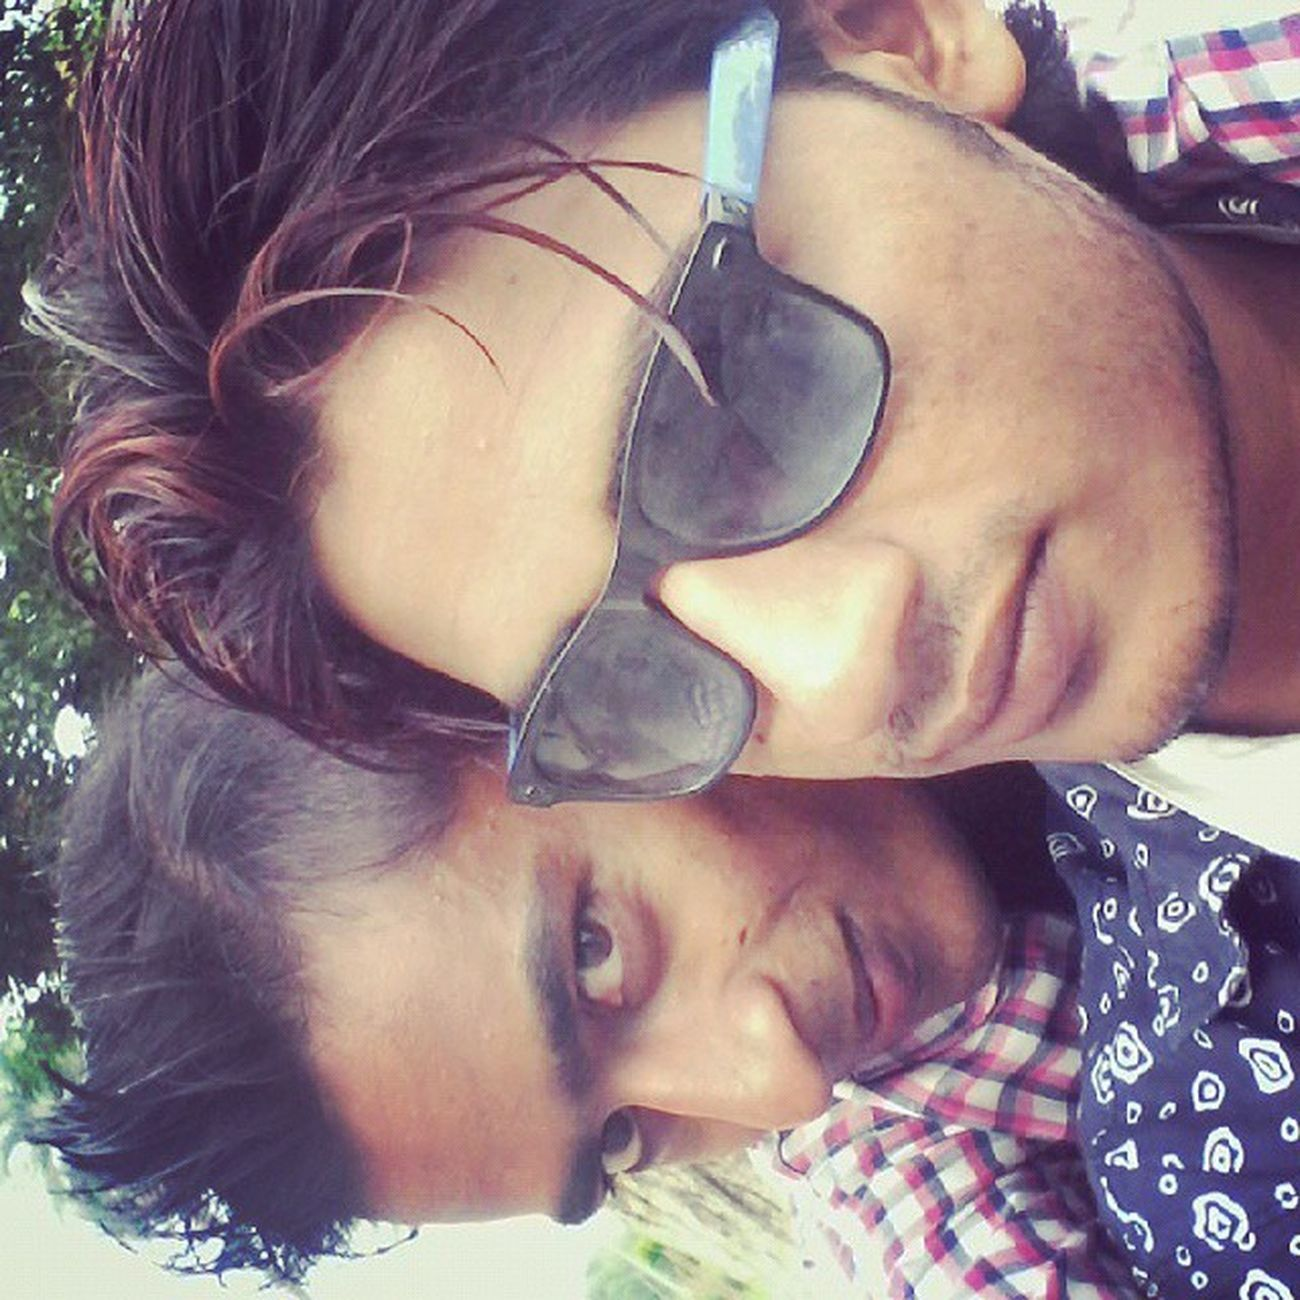 Selfie with my Best friend MrSaif_Ali StYlIsH_AtTiTuDe_ChOkRe Heart Hάςķέŕ Mя_яσςк❤